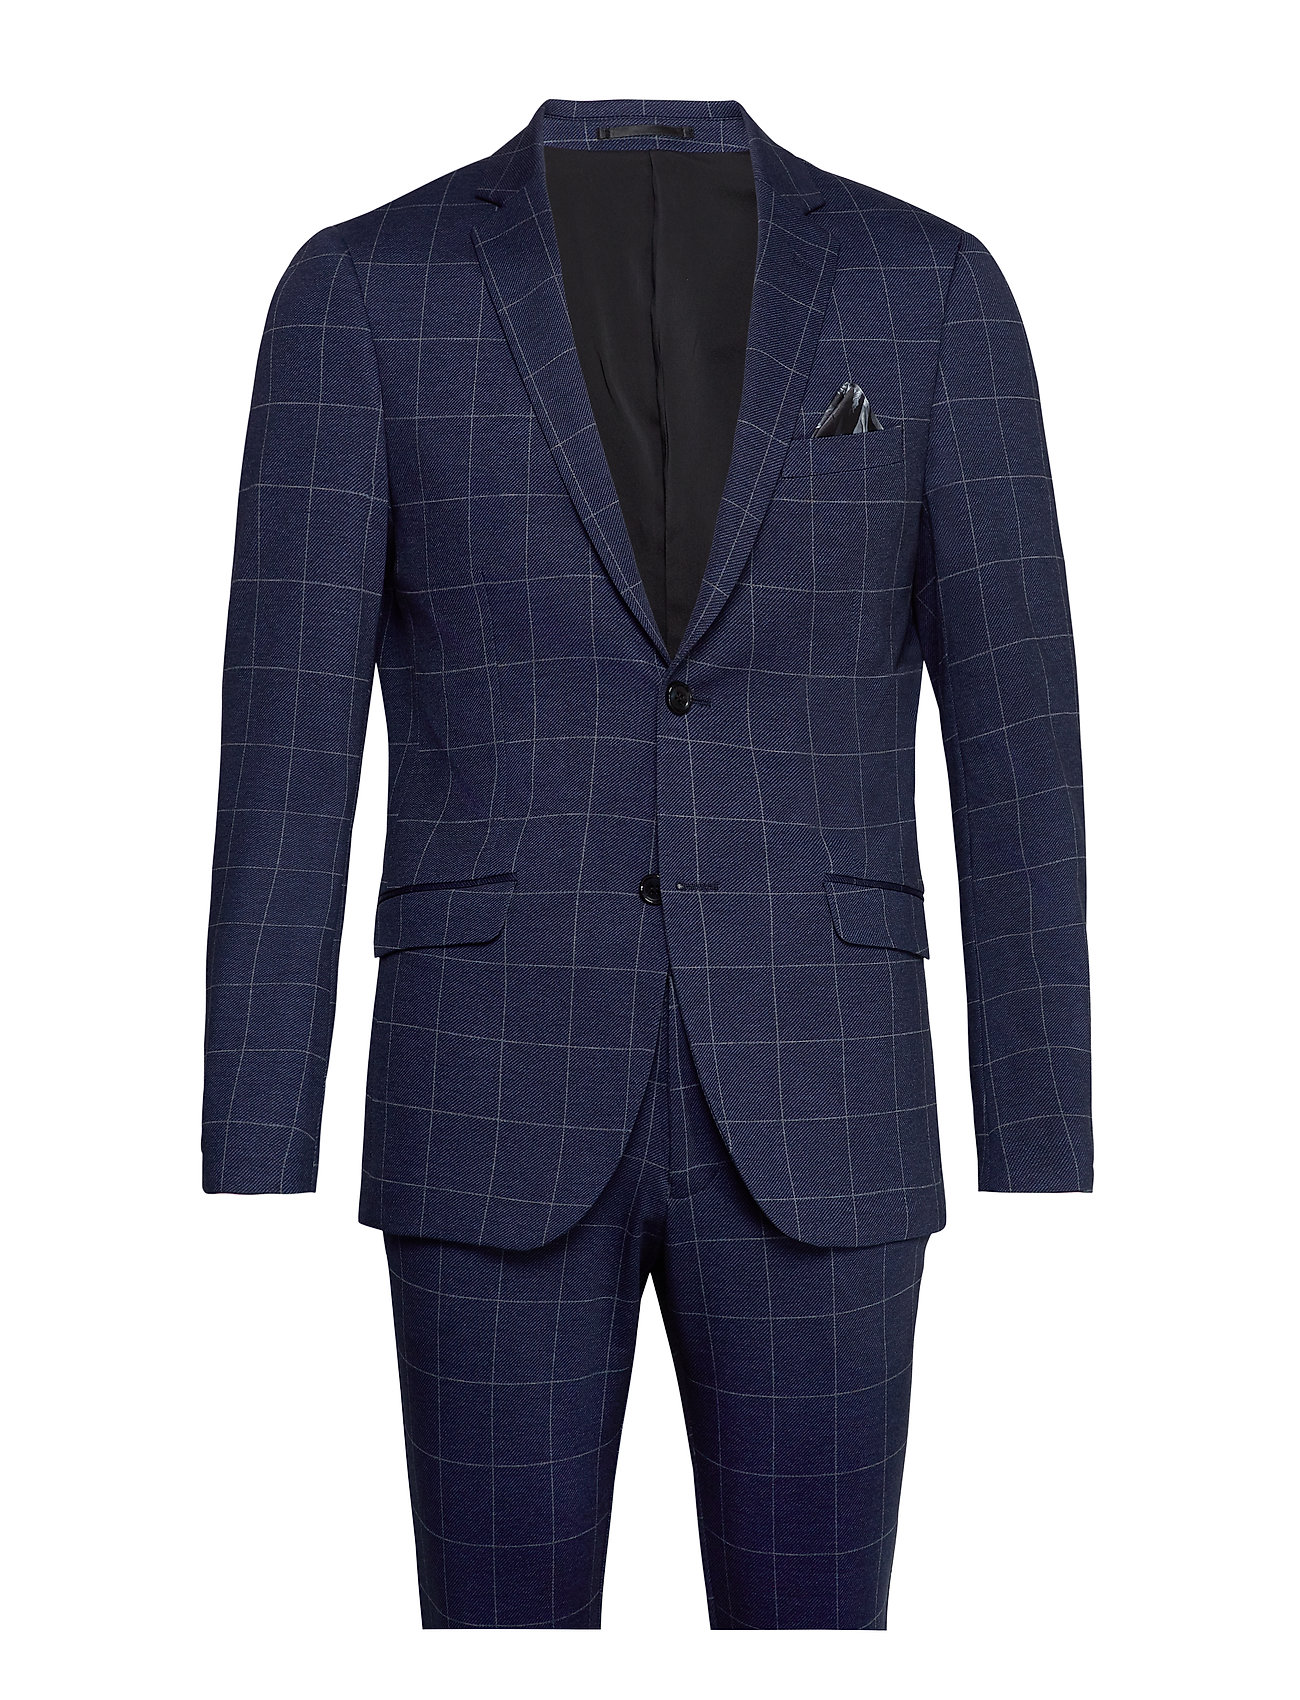 Image of Checked Knitted Suit Habit Blå Lindbergh (3312099045)